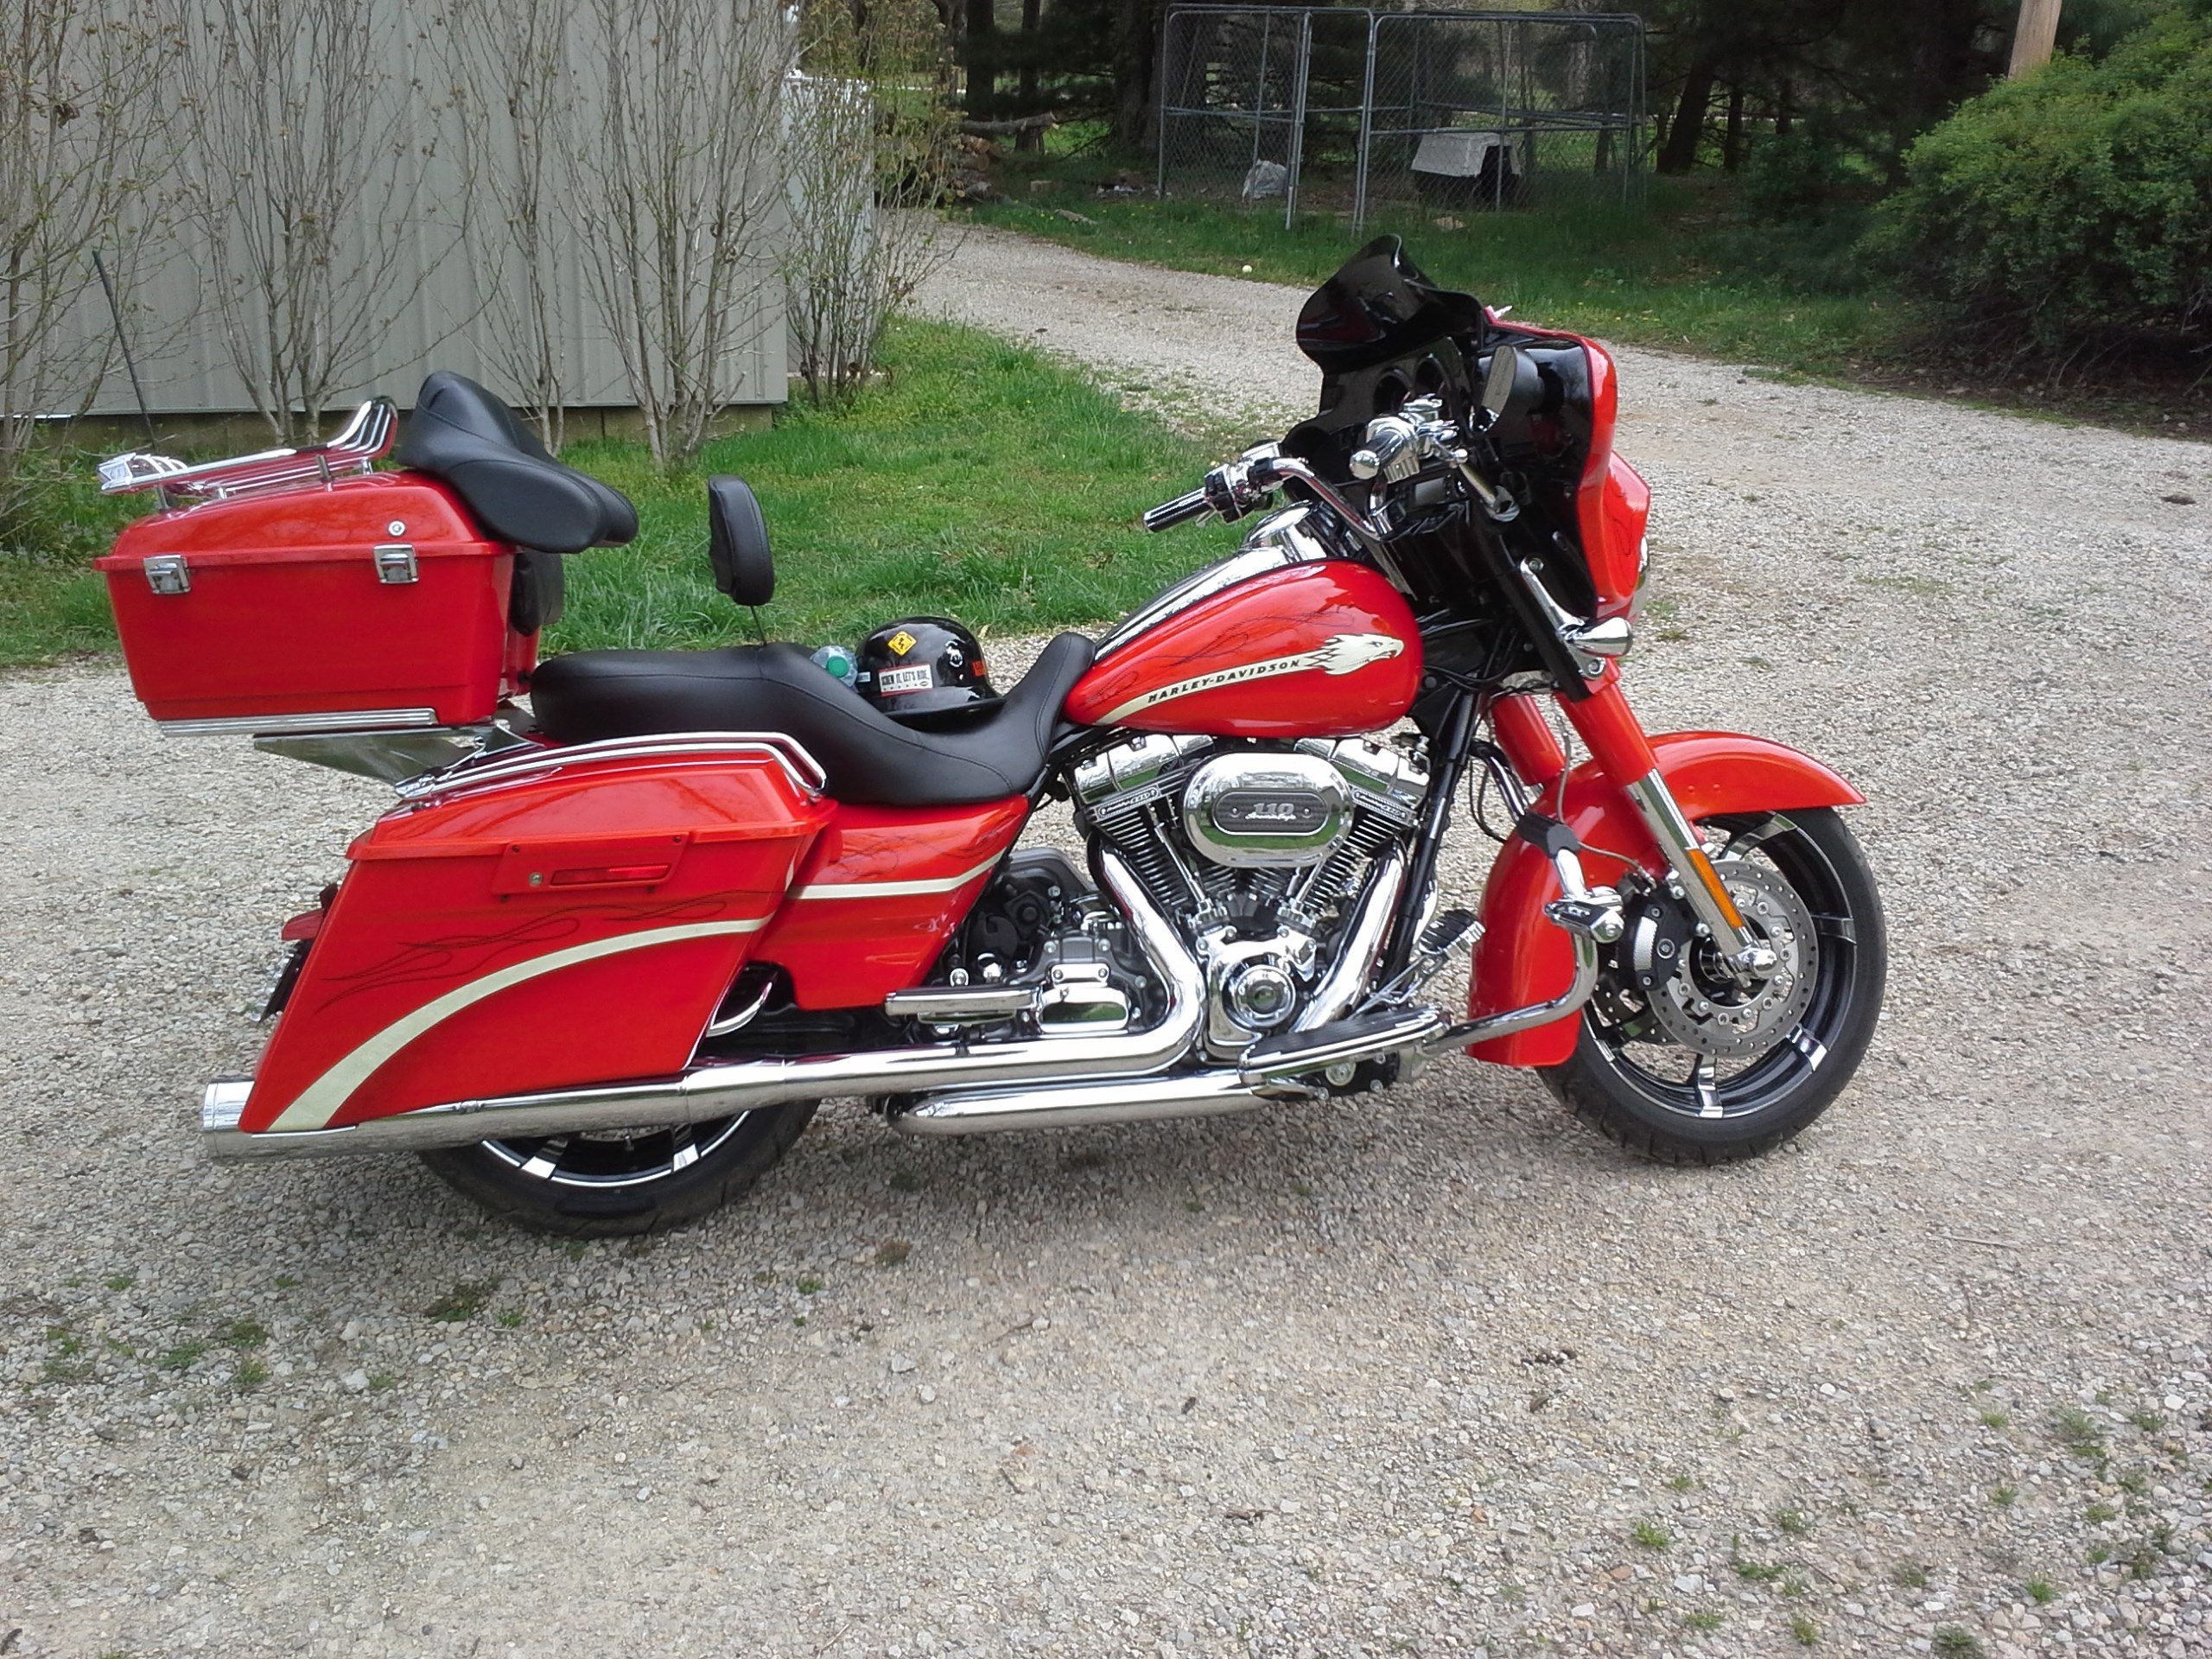 Street Glide Cvo Horse Power | Autos Post